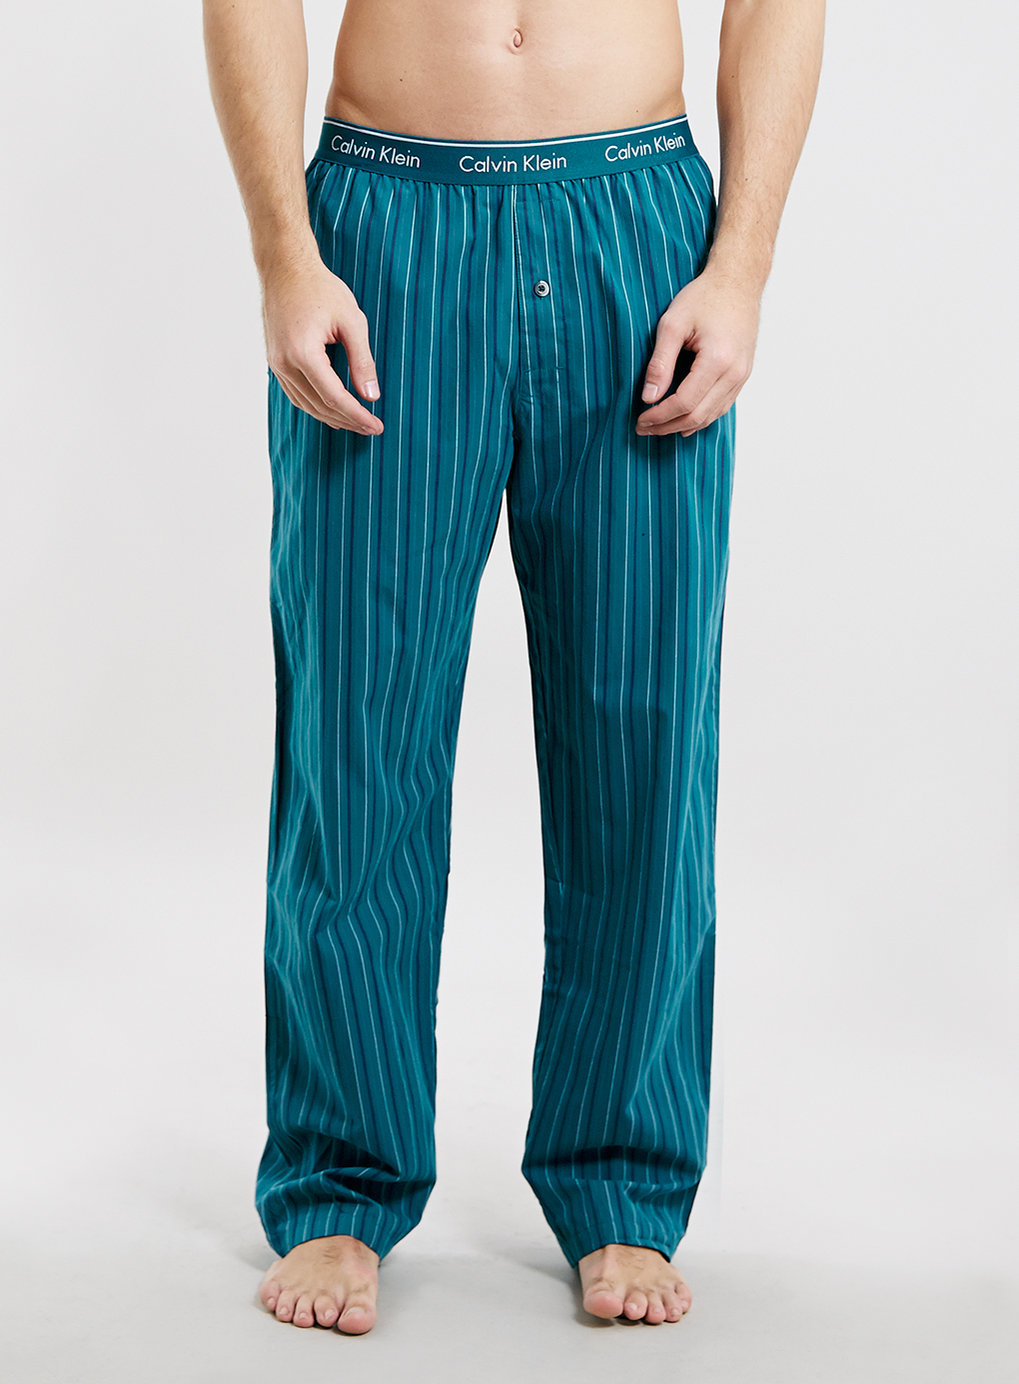 Calvin Klein Green Stripe Woven Pyjama Pants In Green For